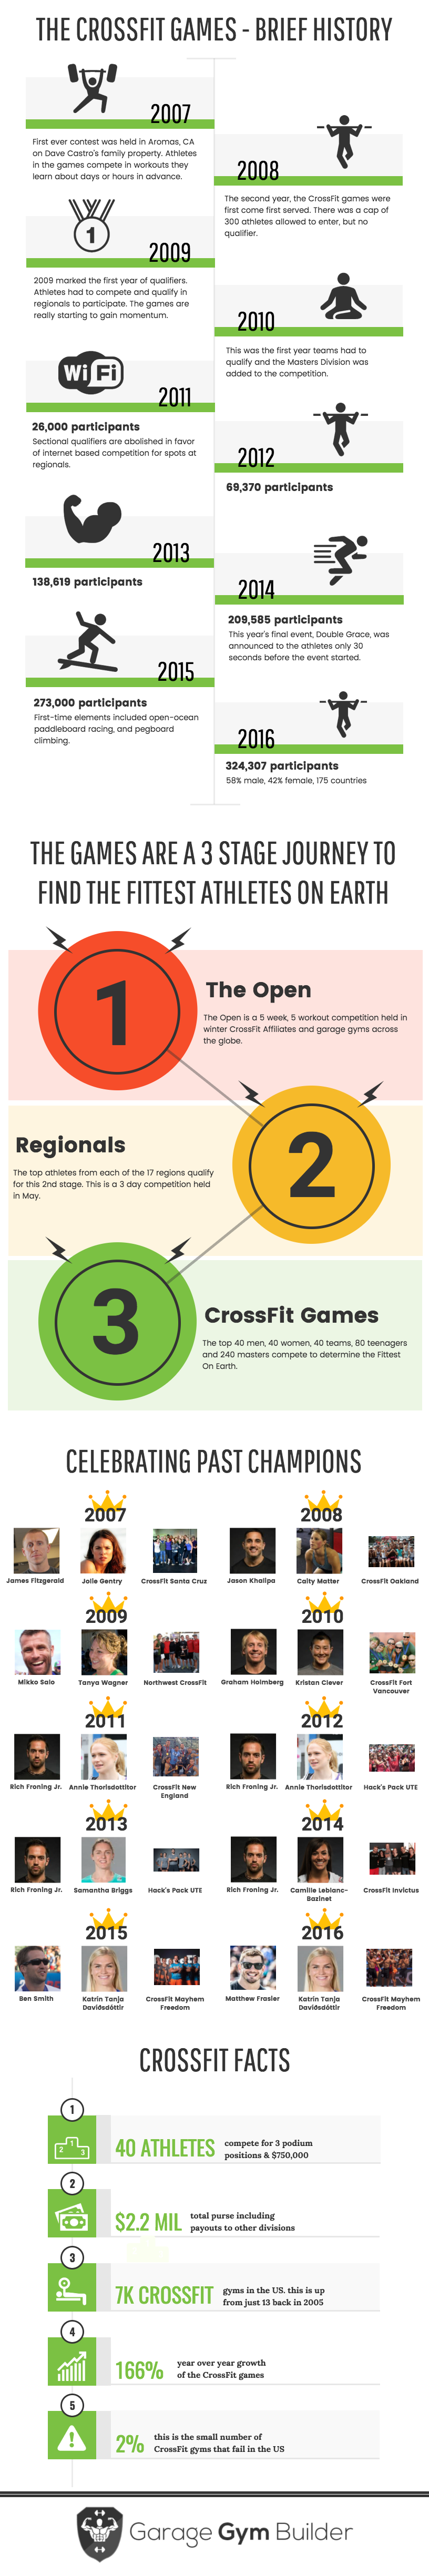 This is an infographic that goes over some basics about the CrossFit Games